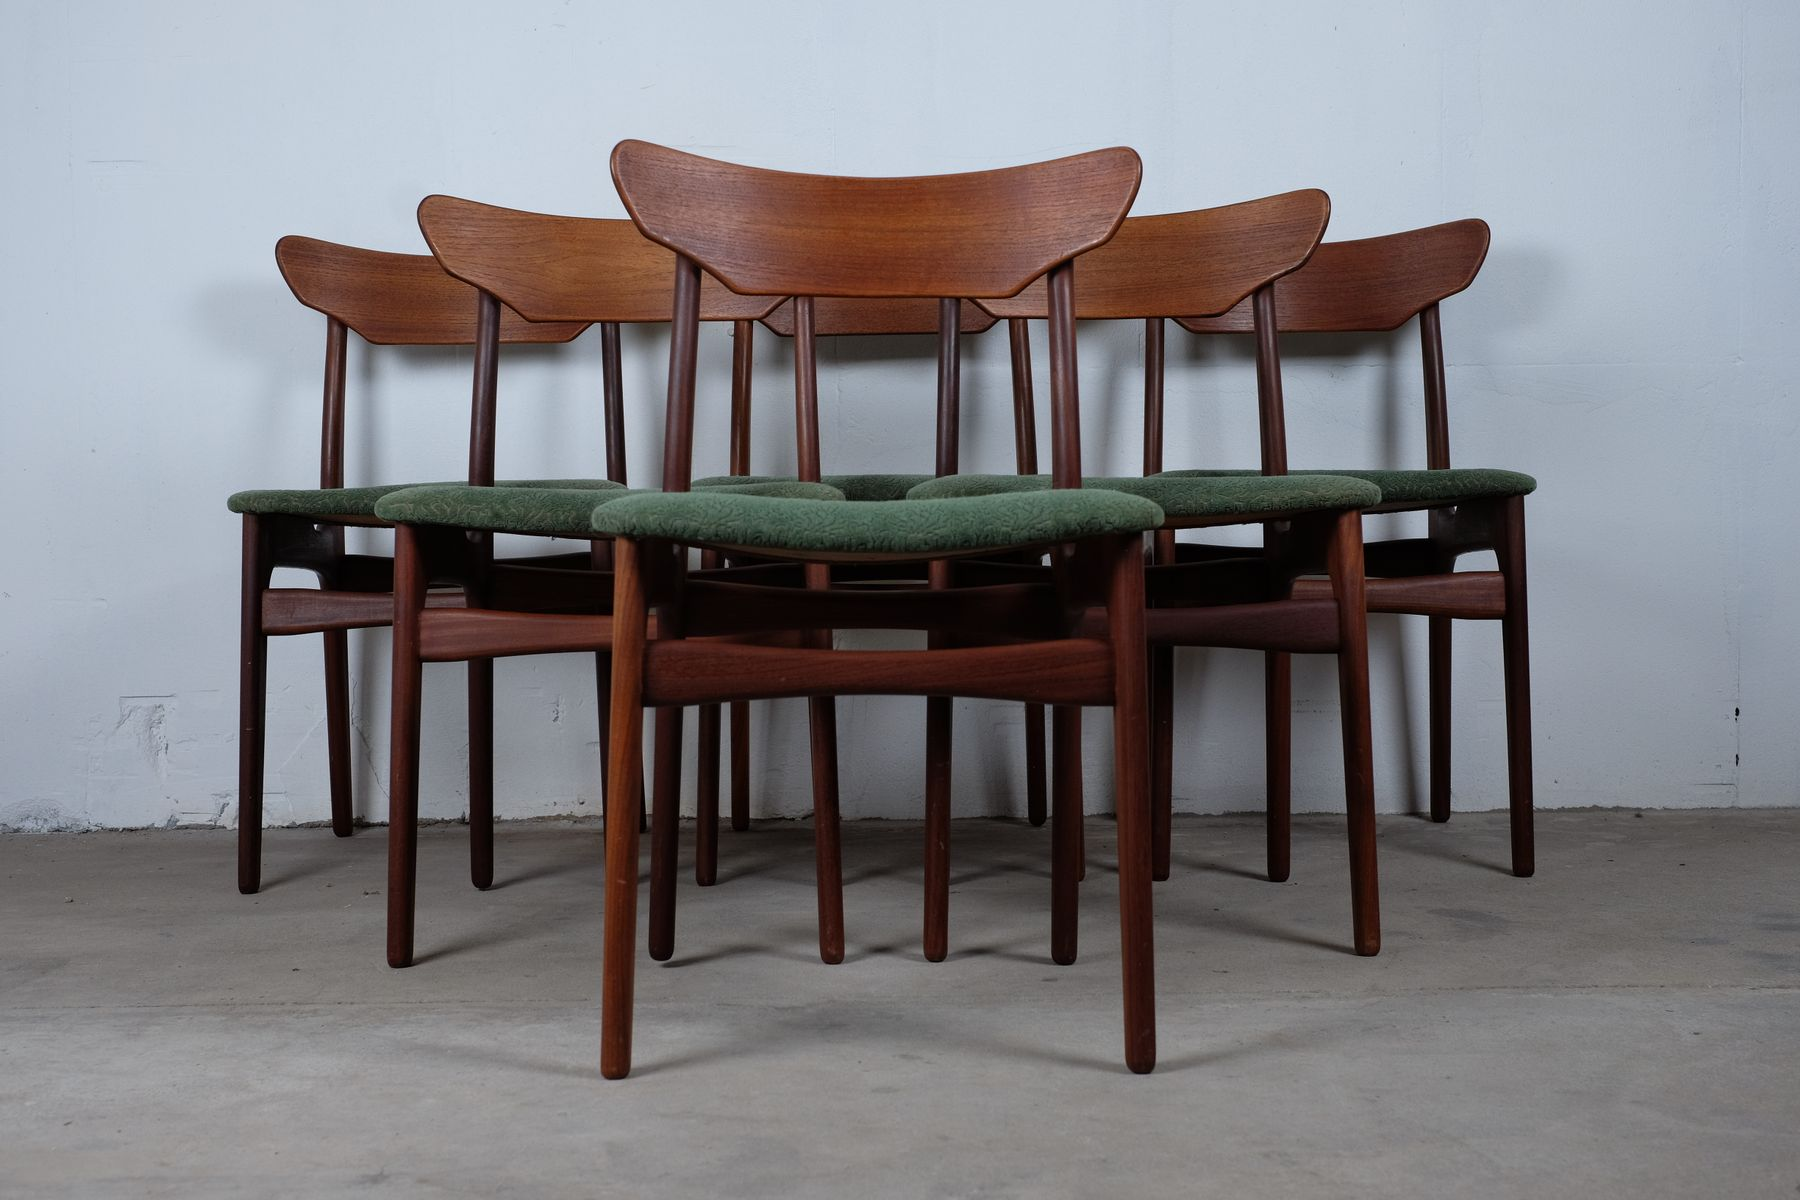 teak dining chairs by scha ning elgaard 1960s set of 6 for sale